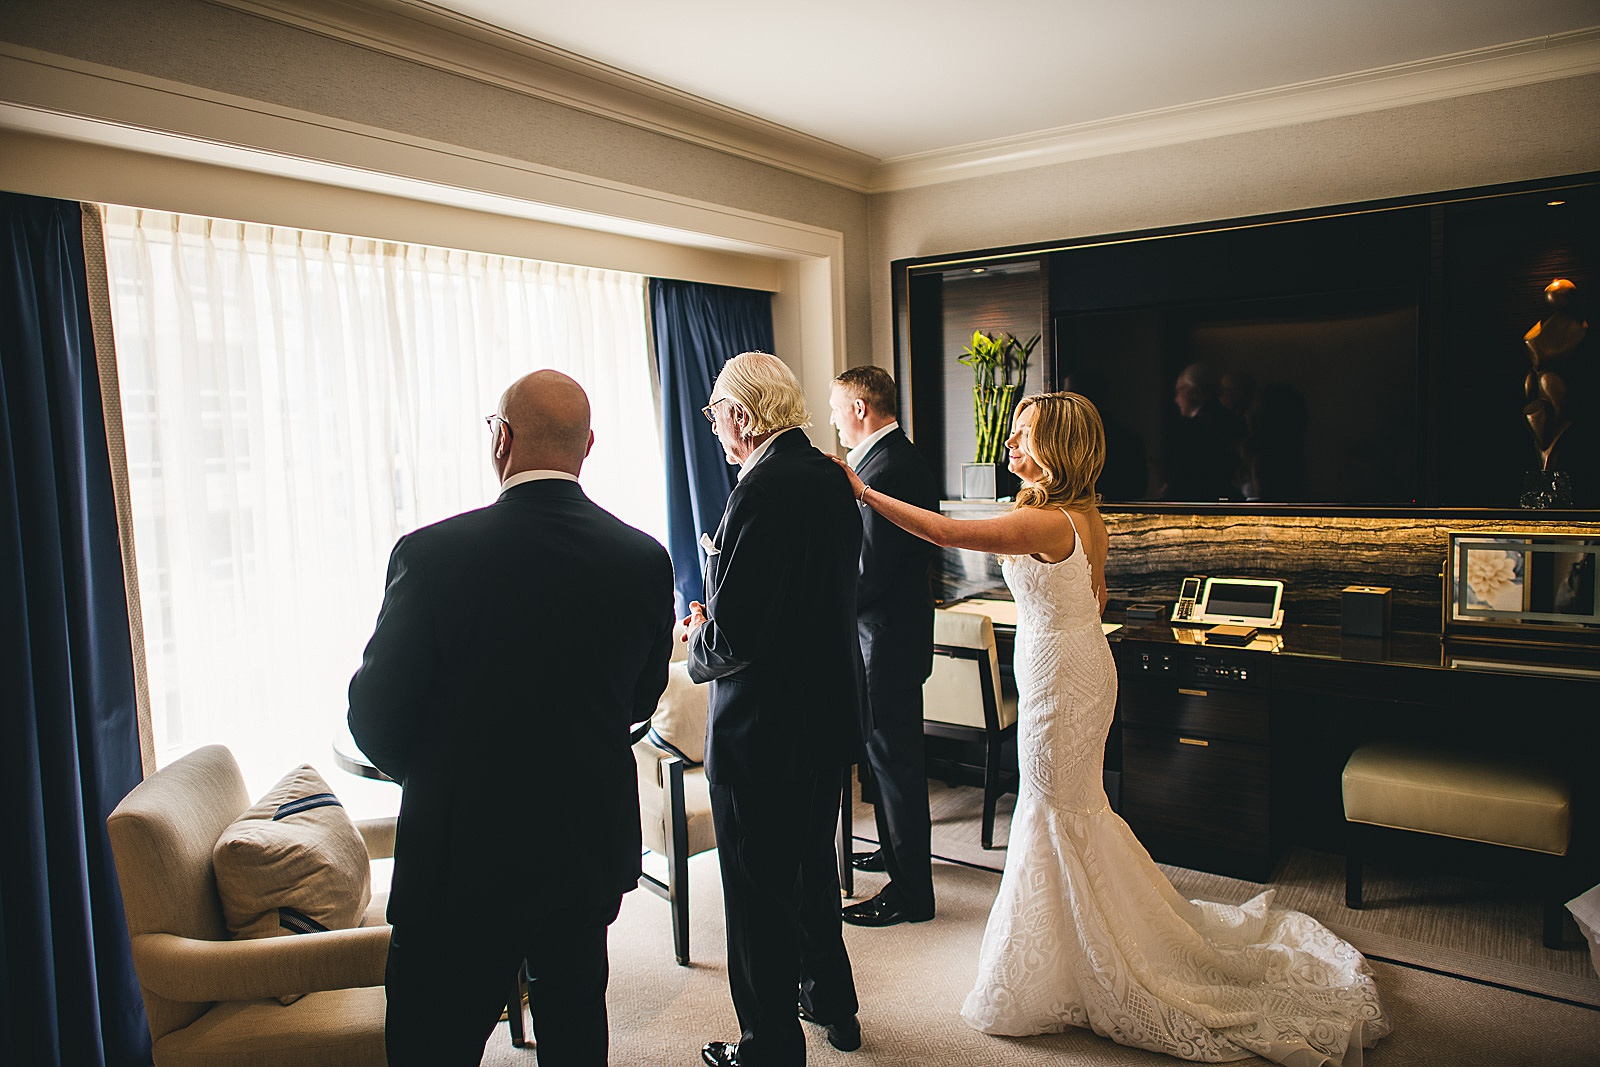 15 bride and dad first look - Susie + Eric's Jewish Wedding at the Peninsula Hotel in Chicago